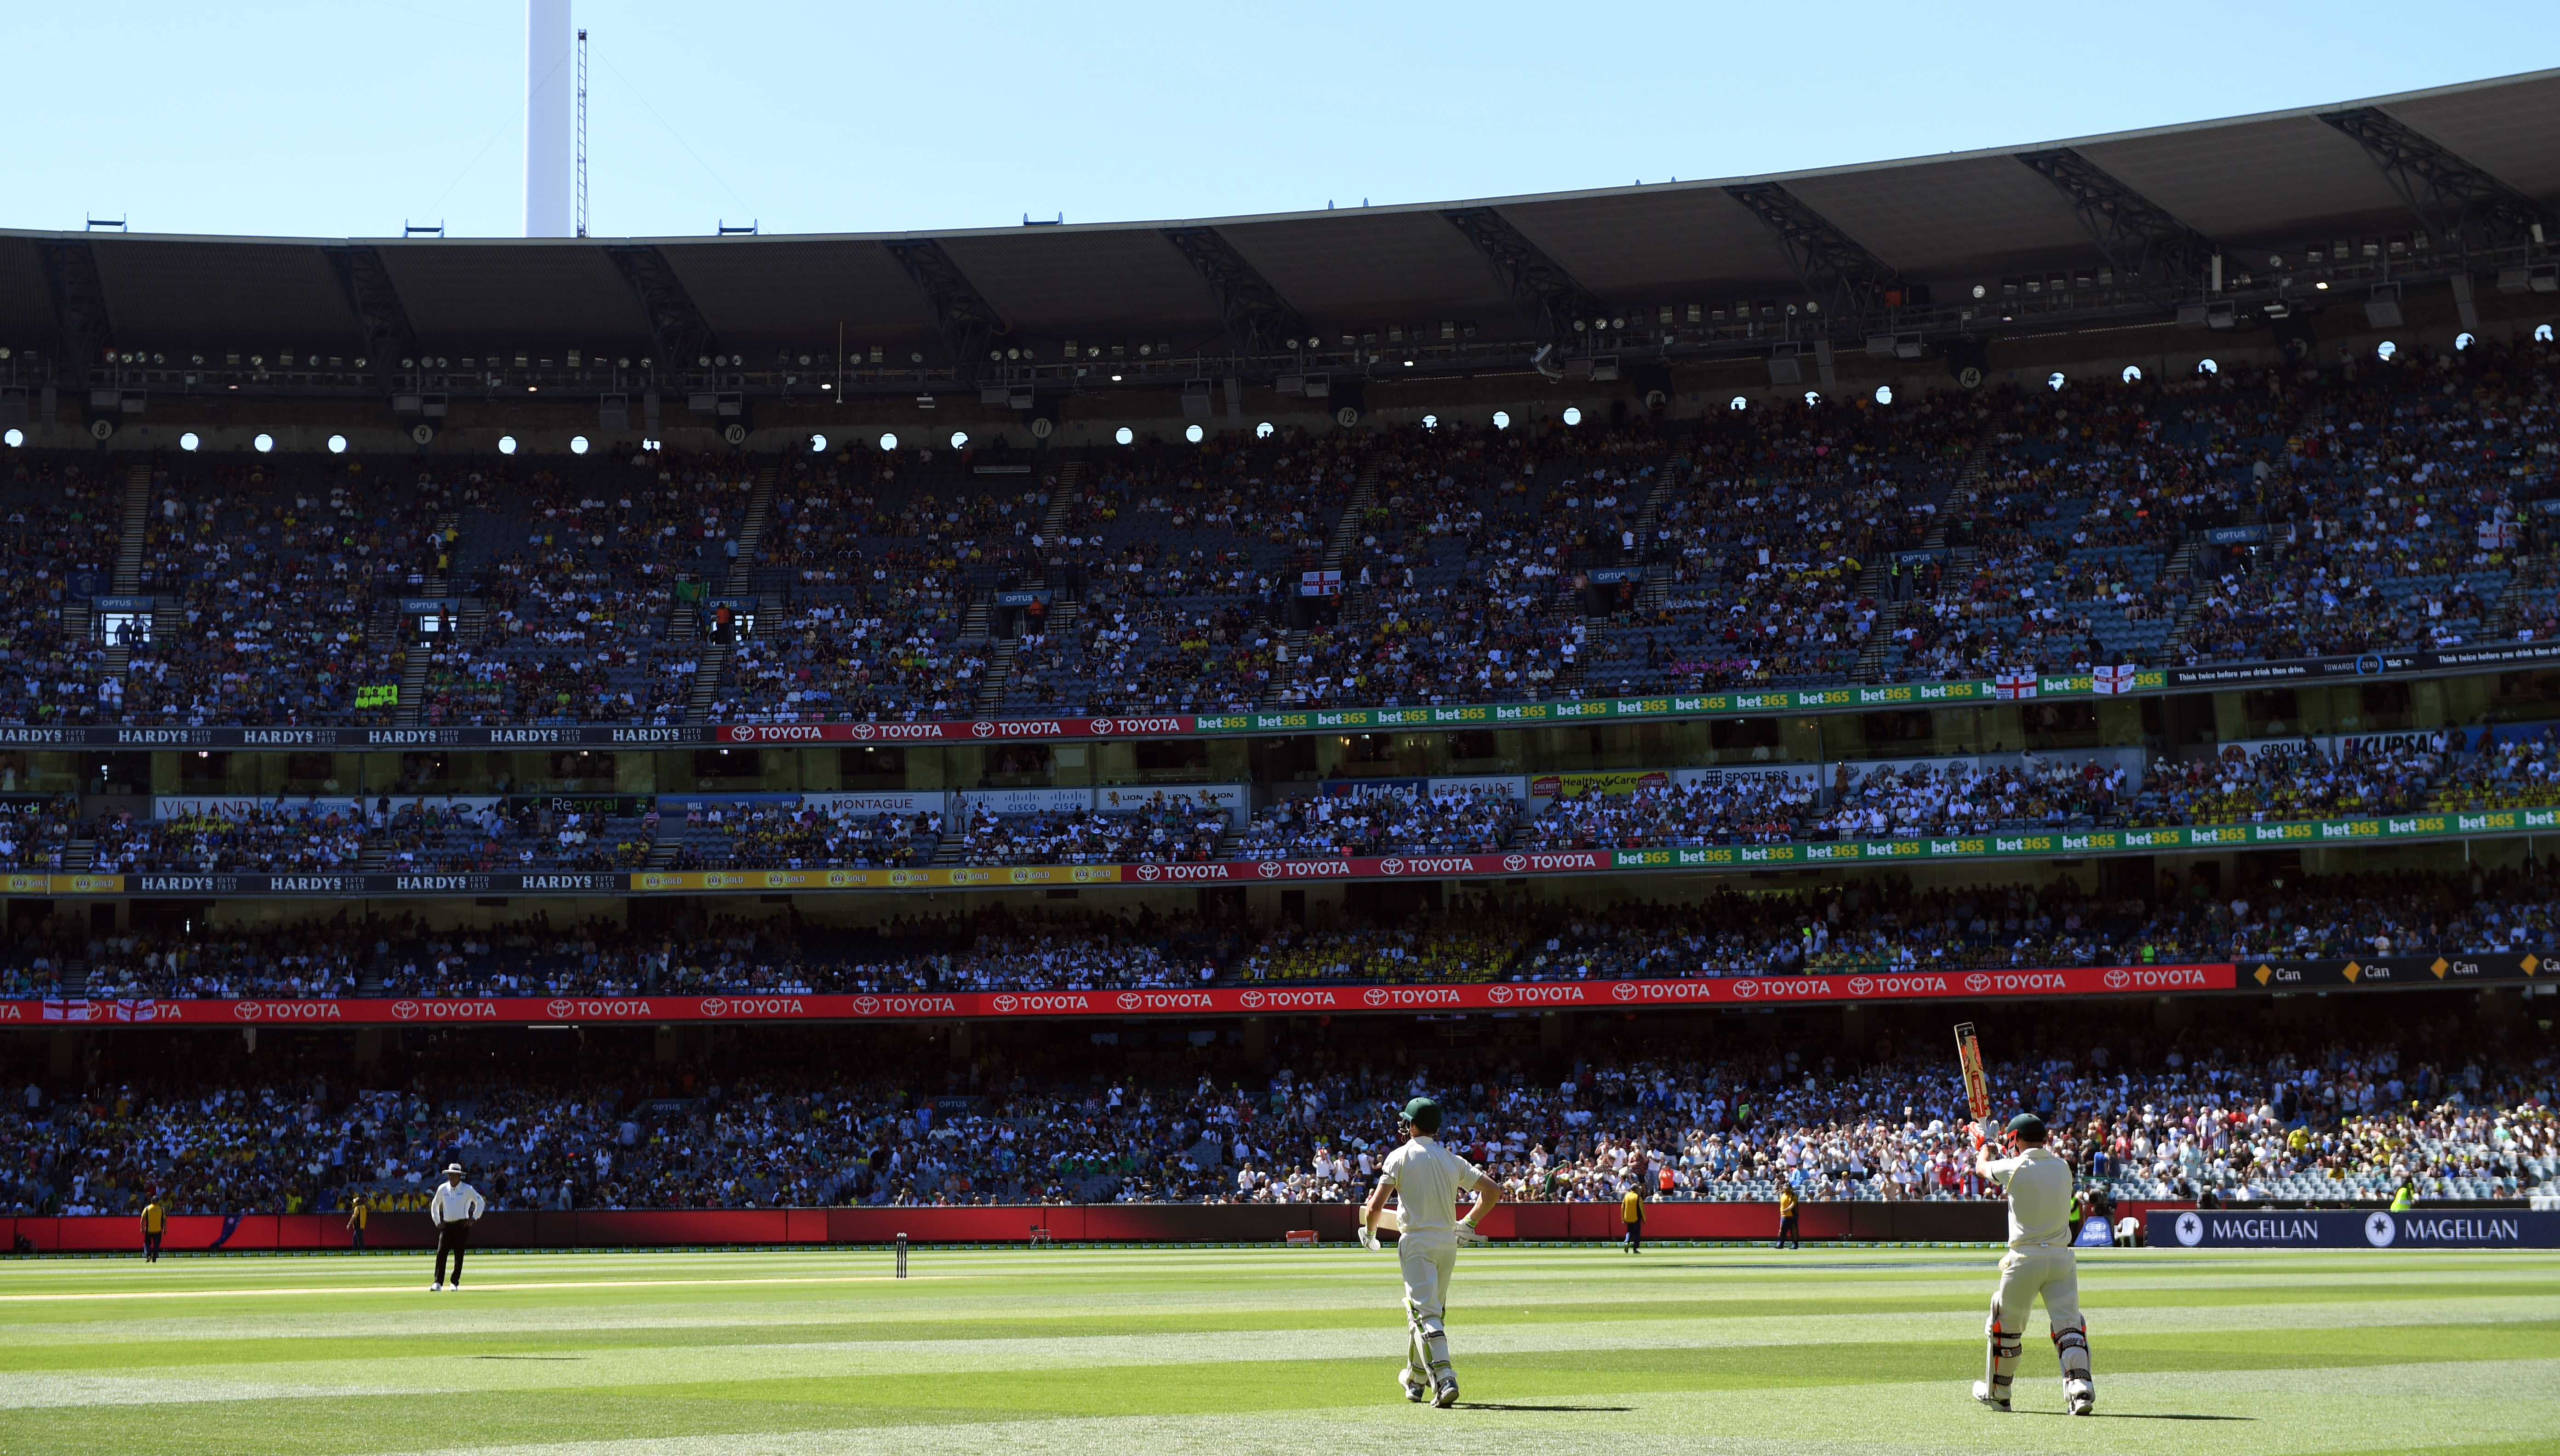 Perth Stadium could be planning to steal the Boxing Day Test from the MCG